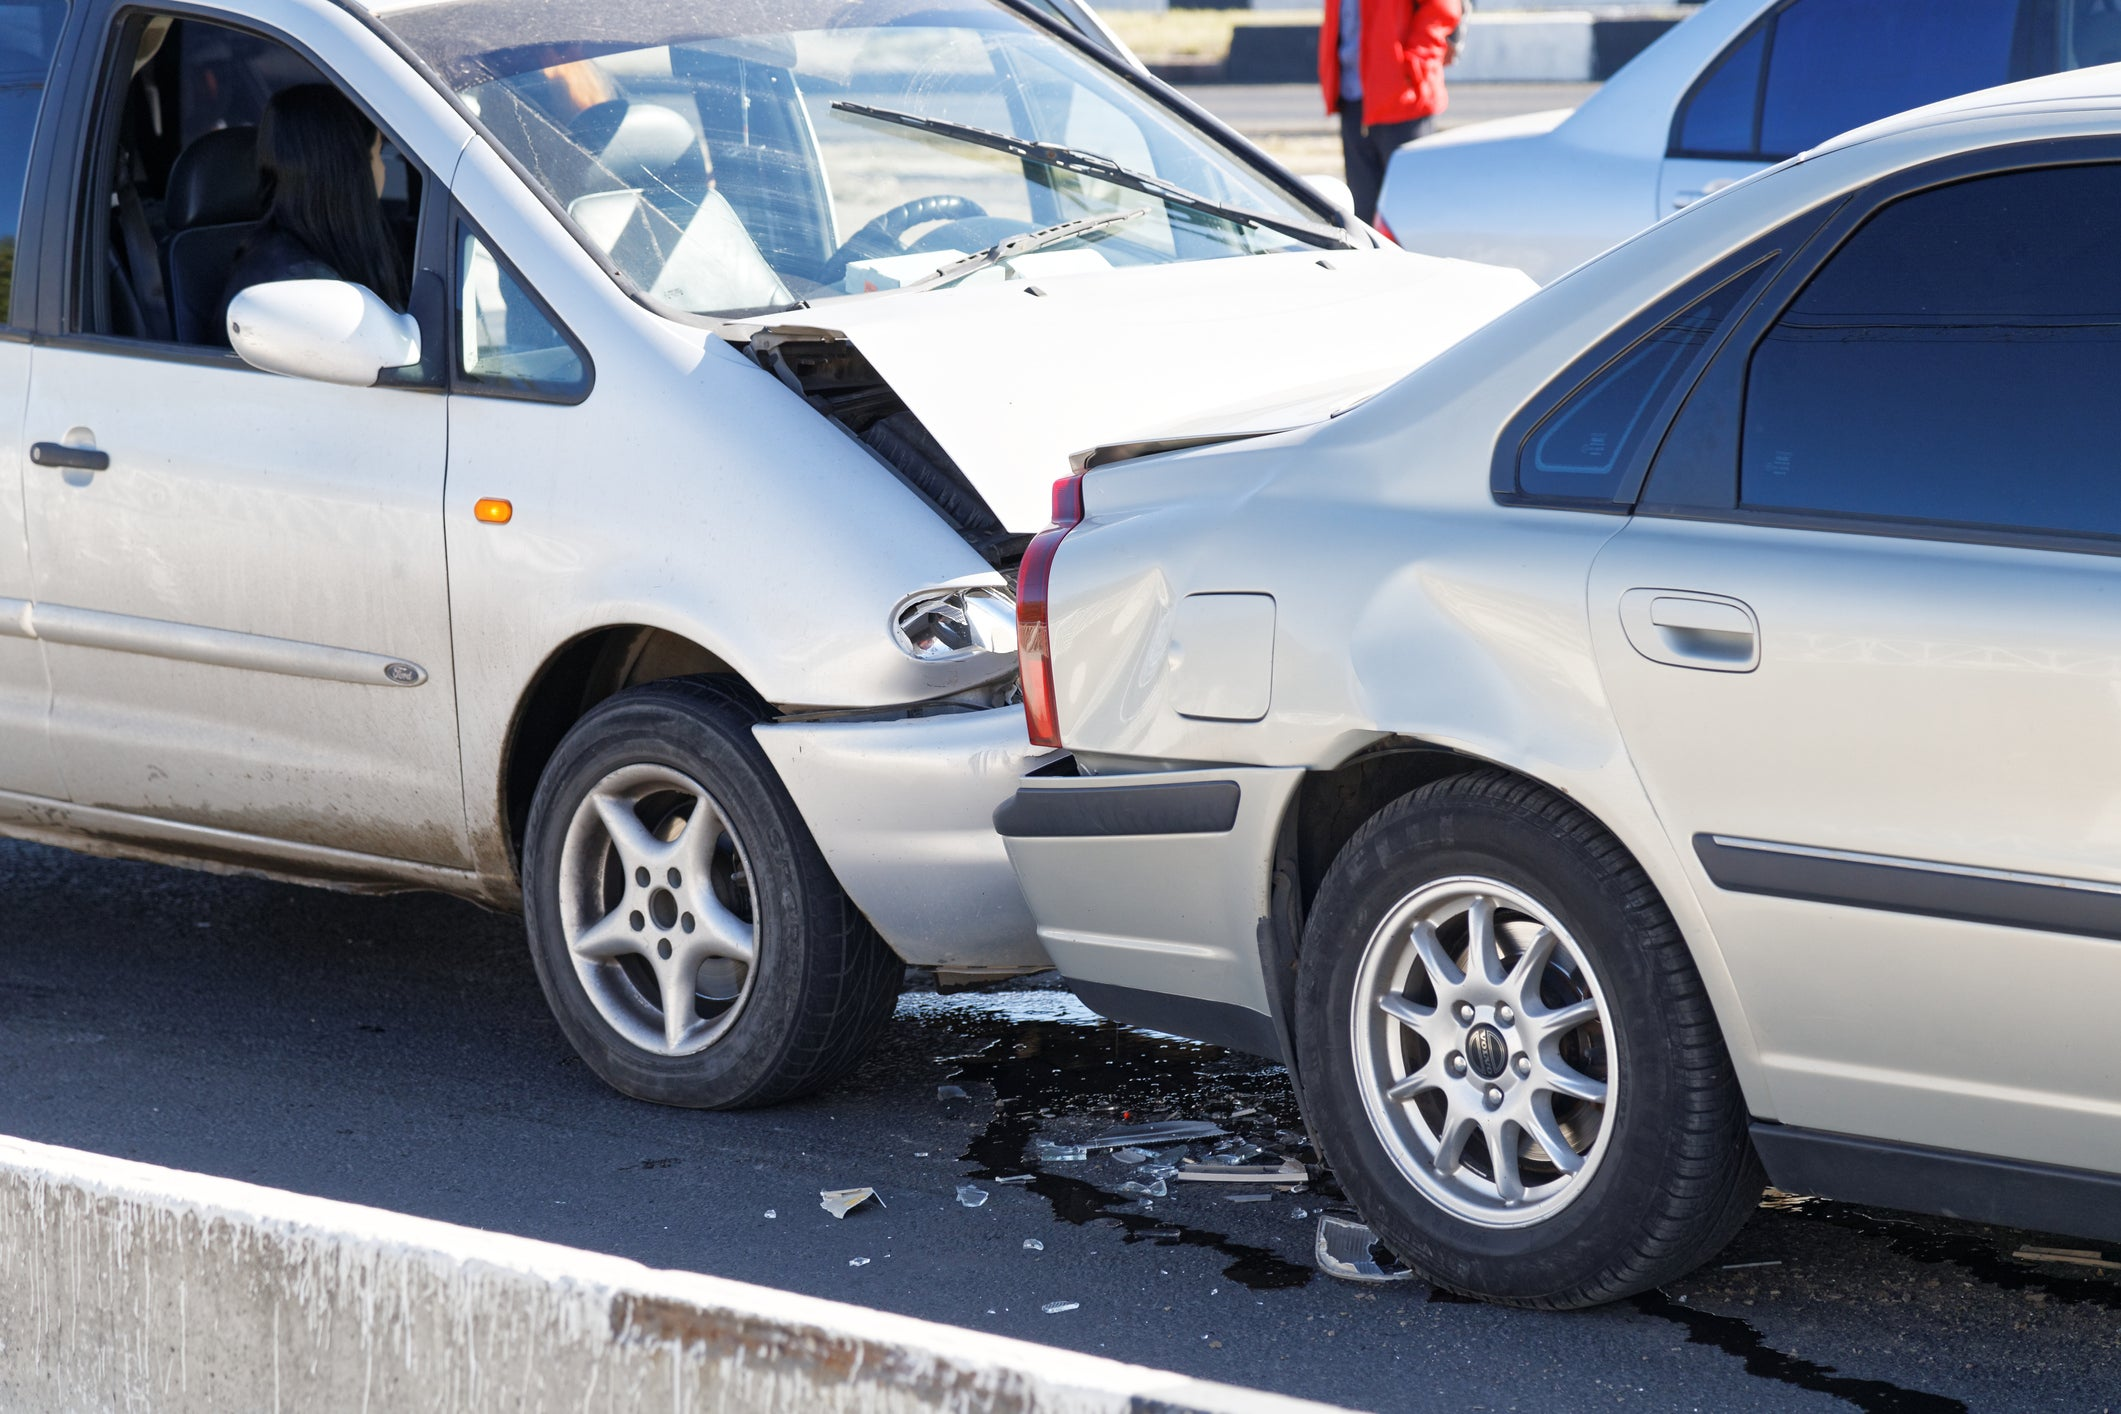 car accident will affect victim's credit score